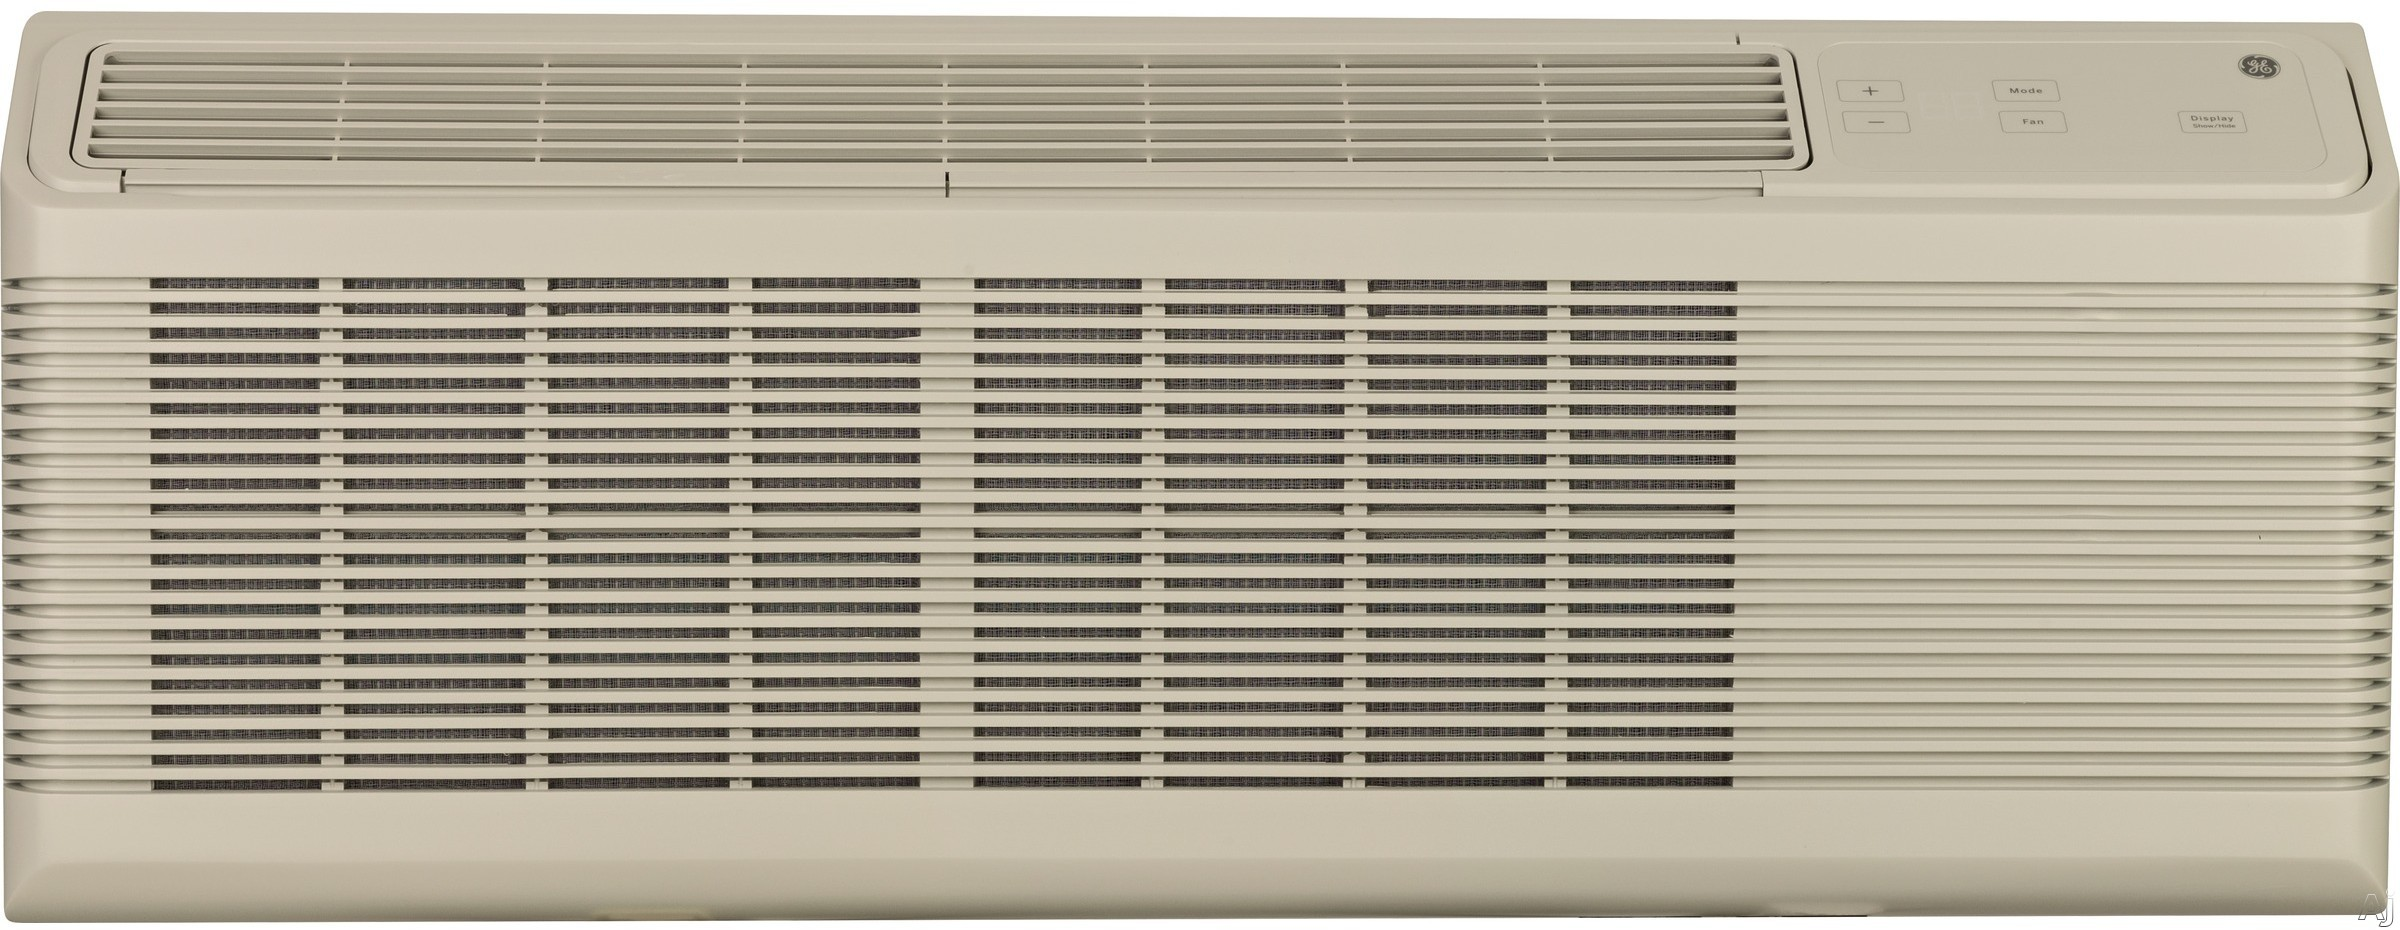 GE Zoneline AZ65H15DAB 14,400 BTU Packaged Terminal Air Conditioner with 13,500 BTU Heat Pump and Electric Heat Backup, 449 CFM, 10.6 EER, 4.8 Pts/Hr Dehumidification and 3 Fan Speeds AZ65H15DAB